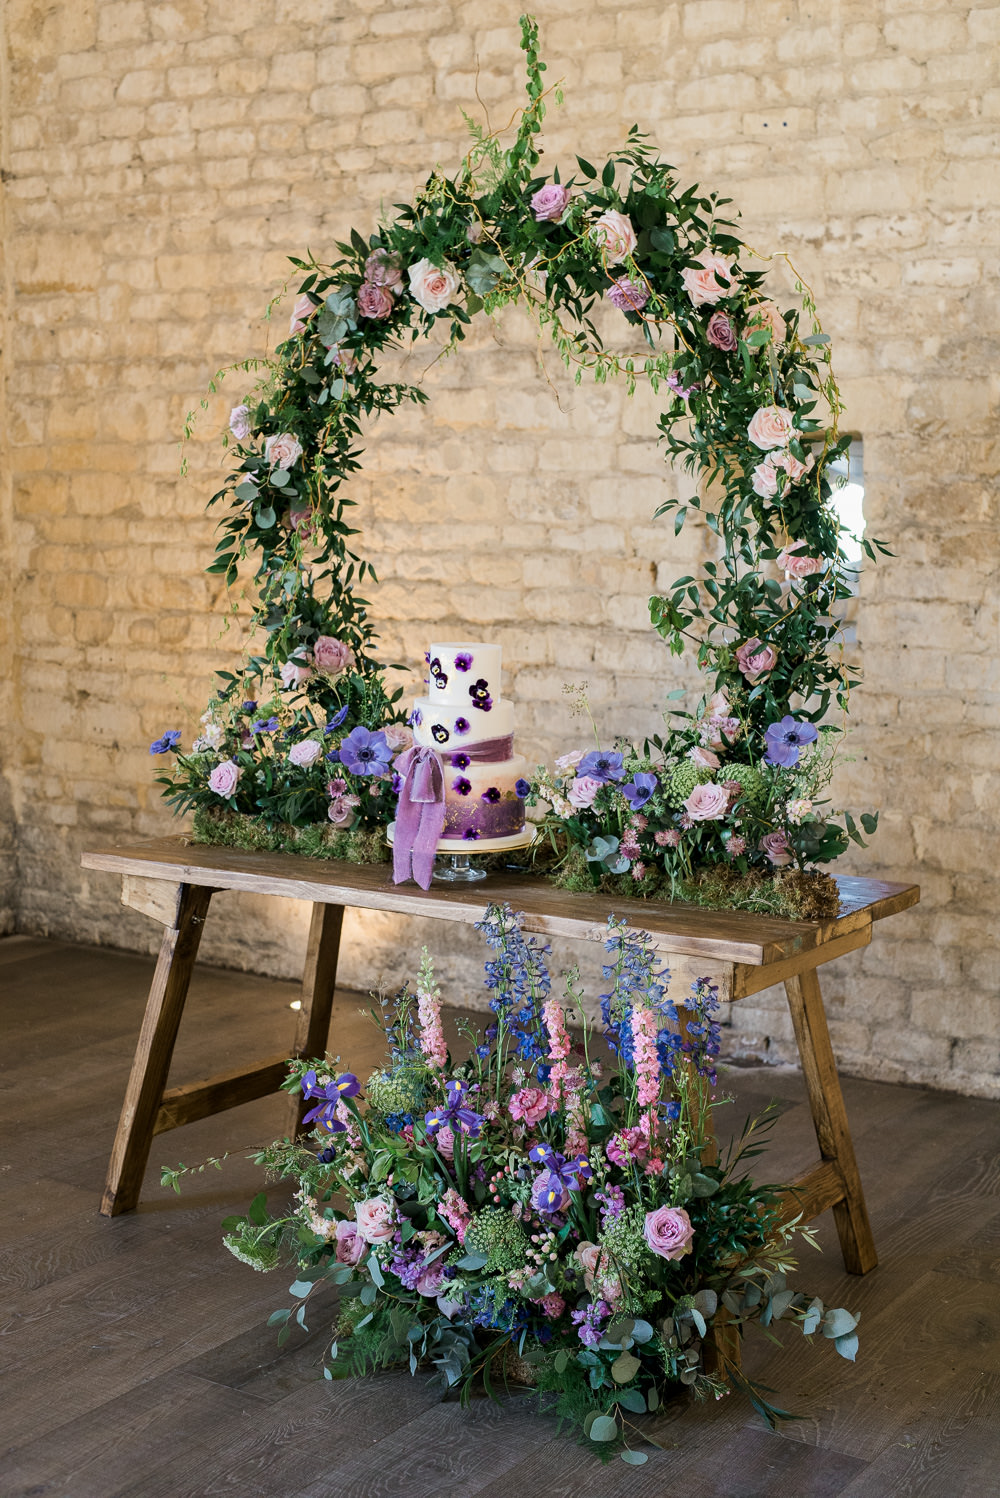 Backdrop Lilac Greenery Hoop Wreath Foliage Table Meadow Ultra Violet Wedding Moon Gate Flower Arch Captured by Katrina Photography